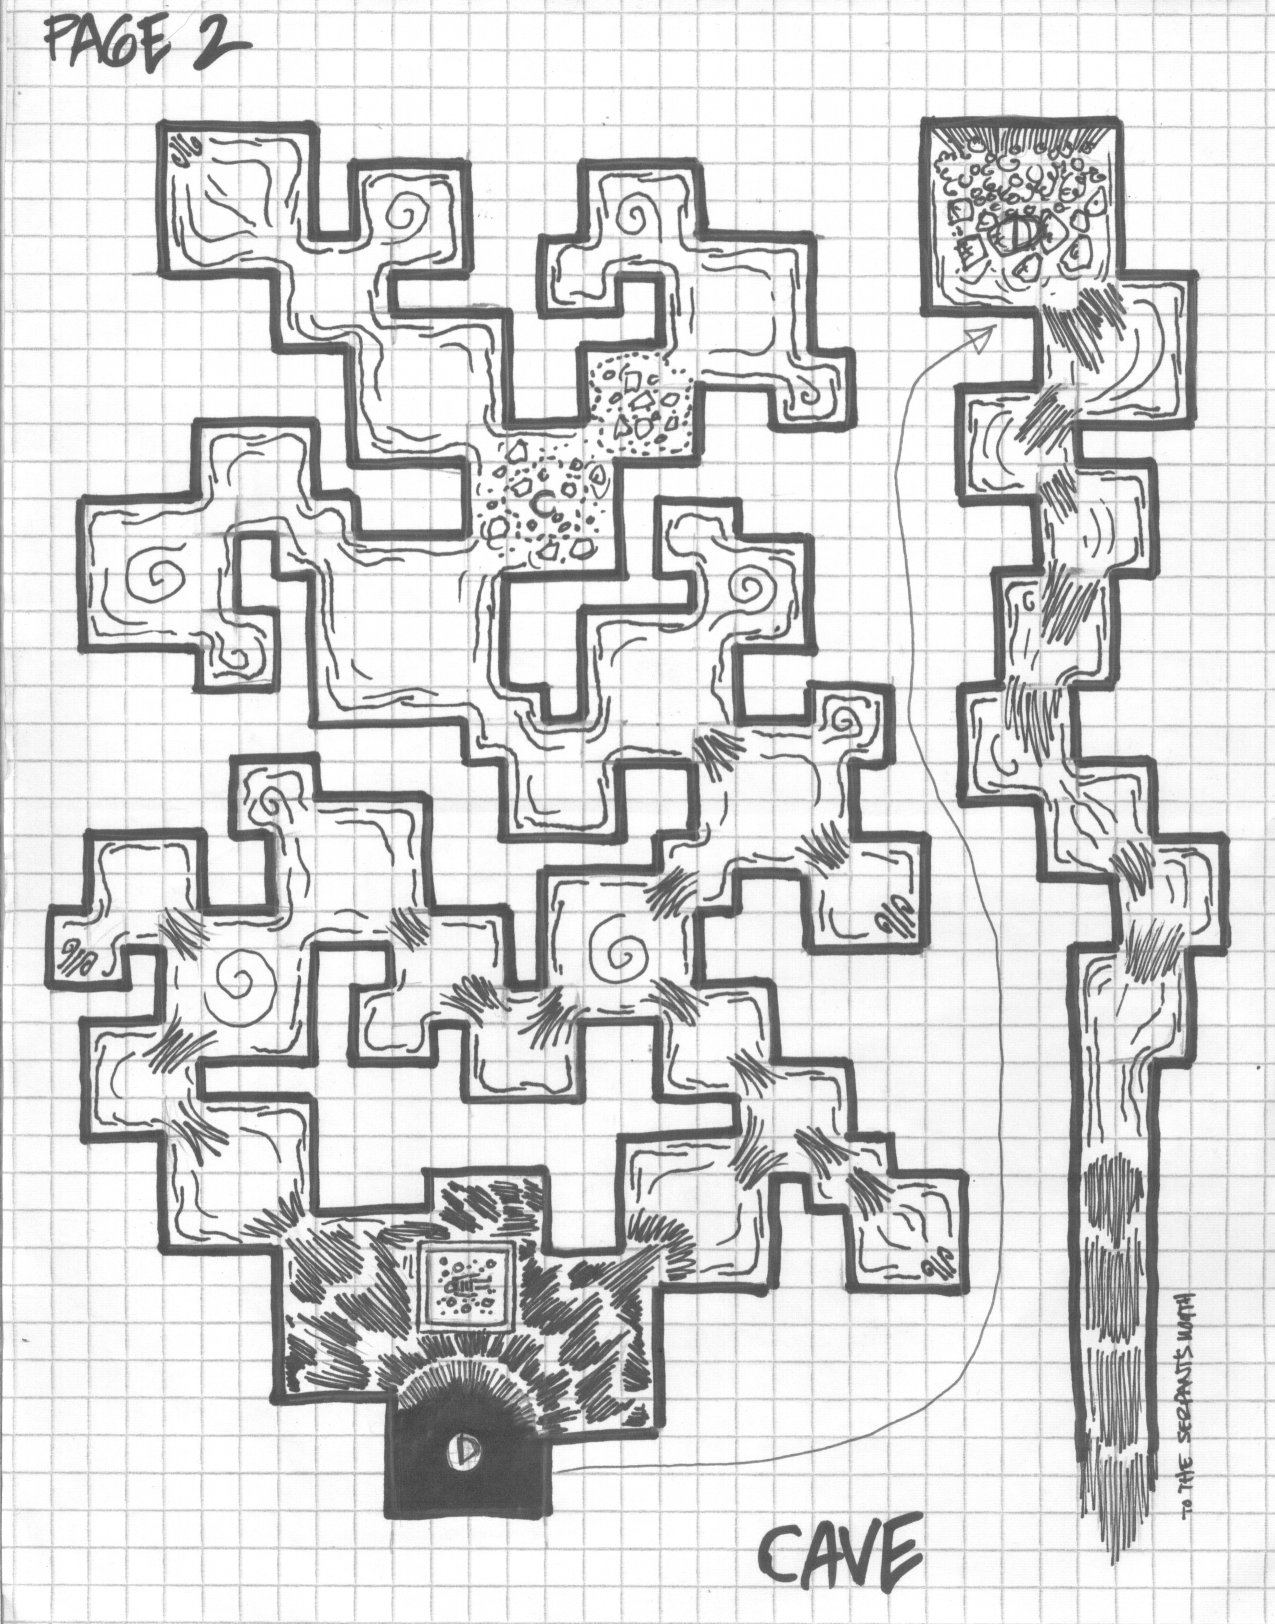 Two levels of a subterranean adventure I have planned. I'm looking for the first page still...